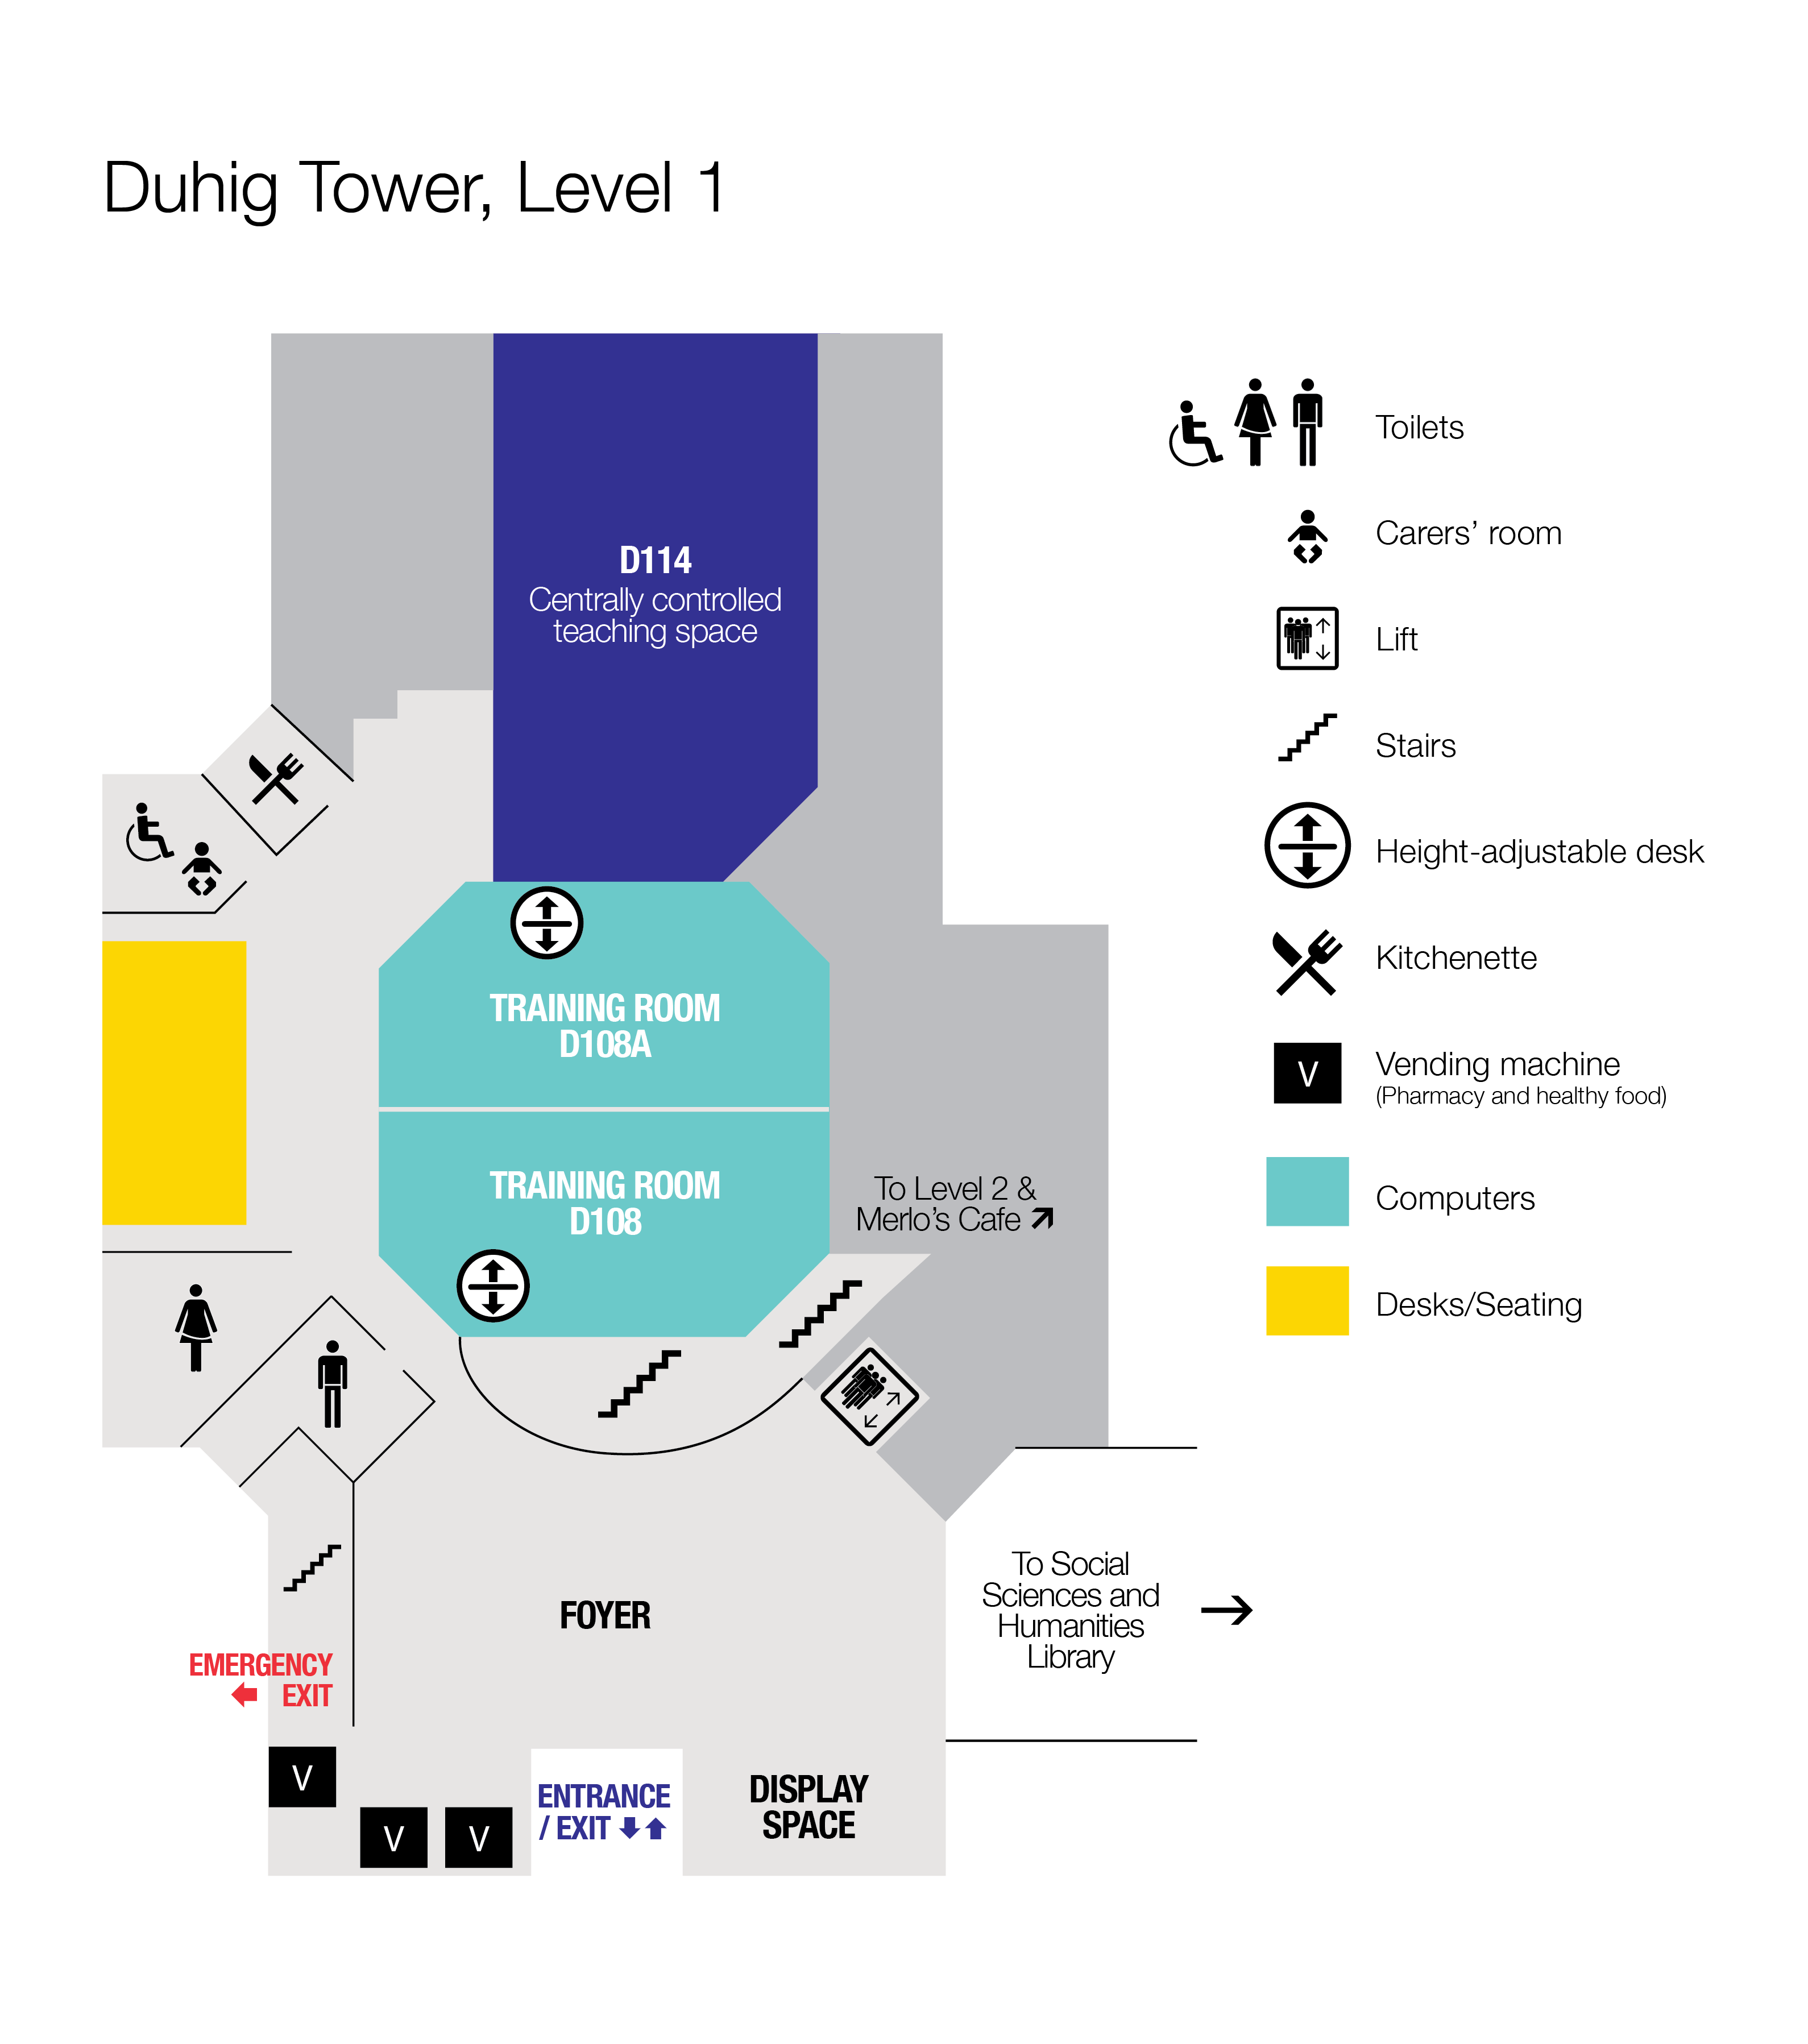 Floor plan Duhig Tower, Level 1